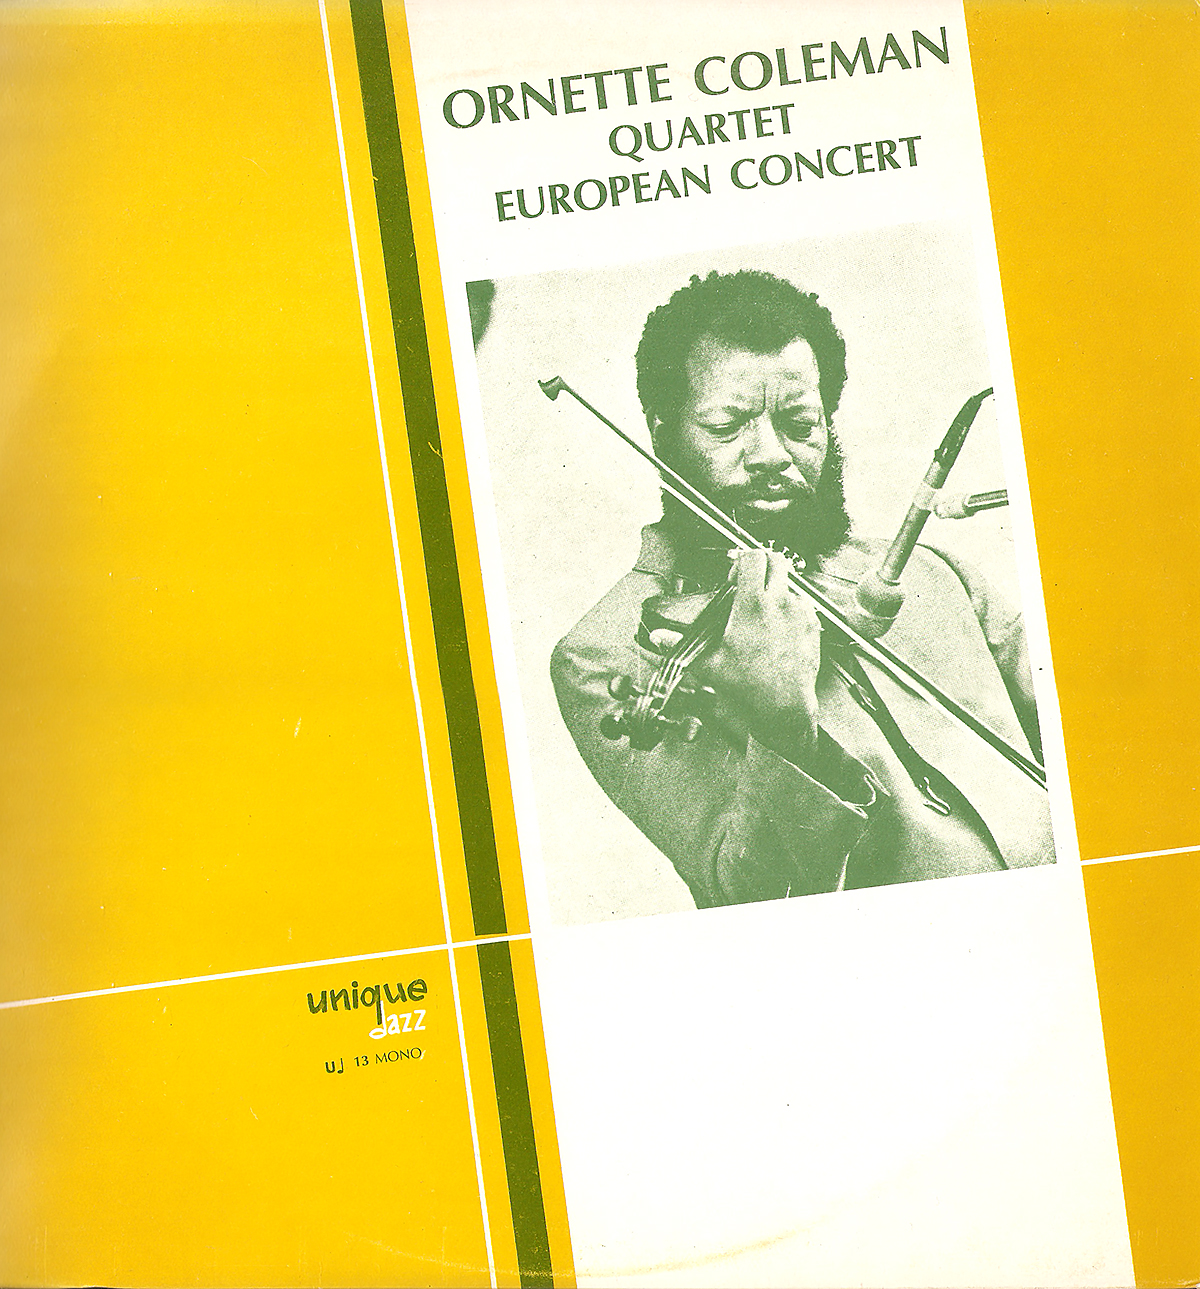 Ornette Coleman Whom Do You Work For